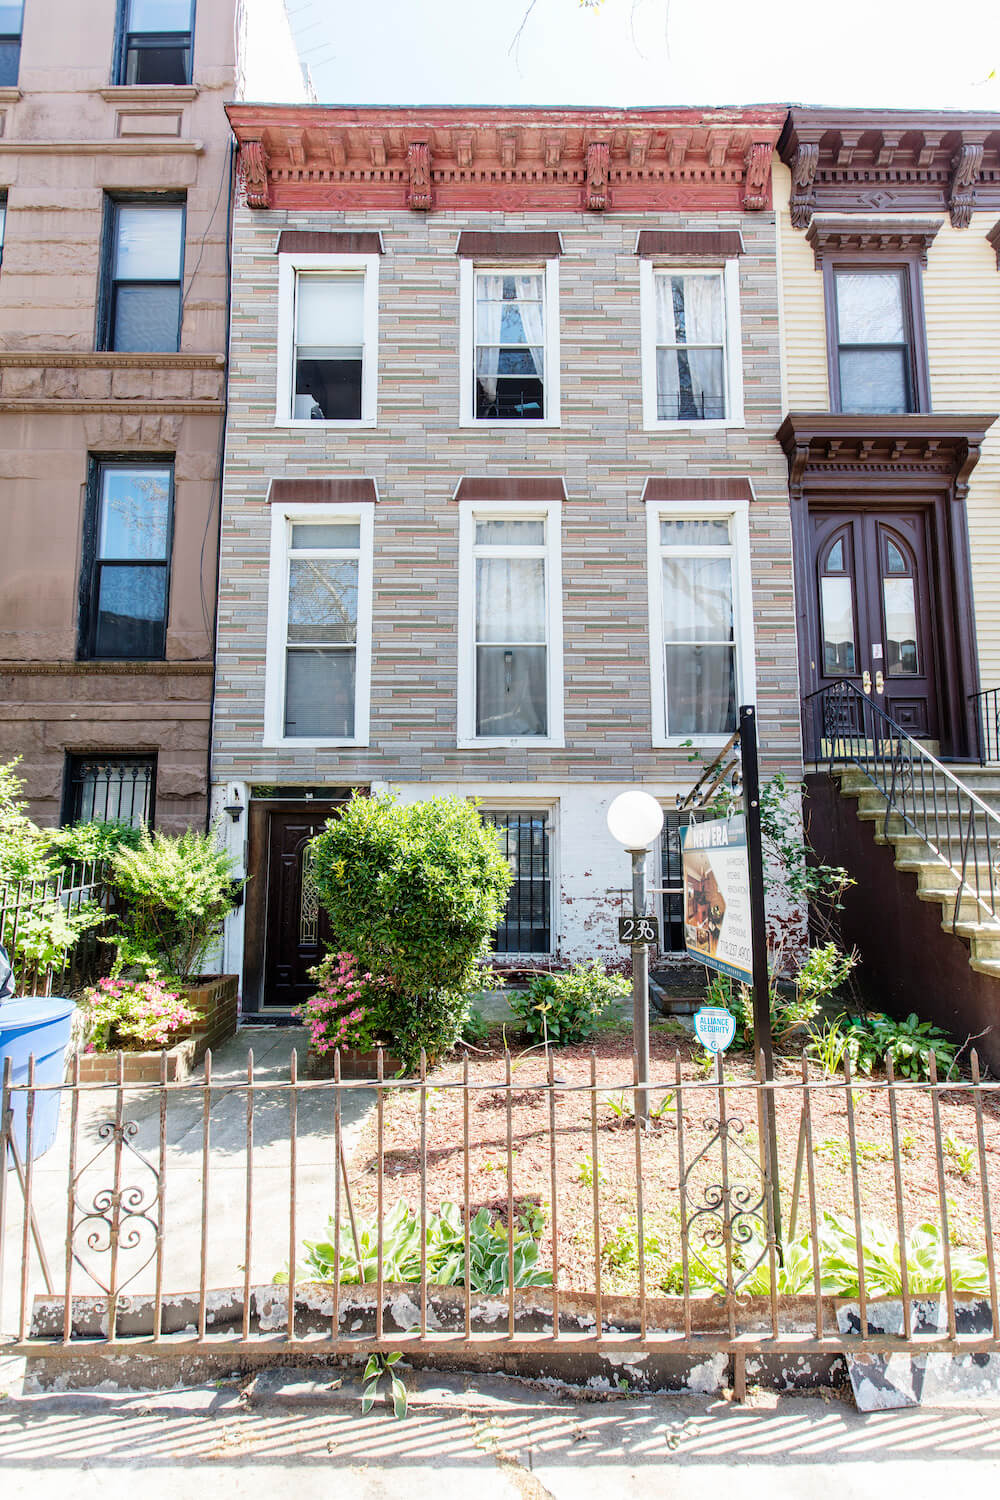 Outside of Bed-Stuy home remodel site